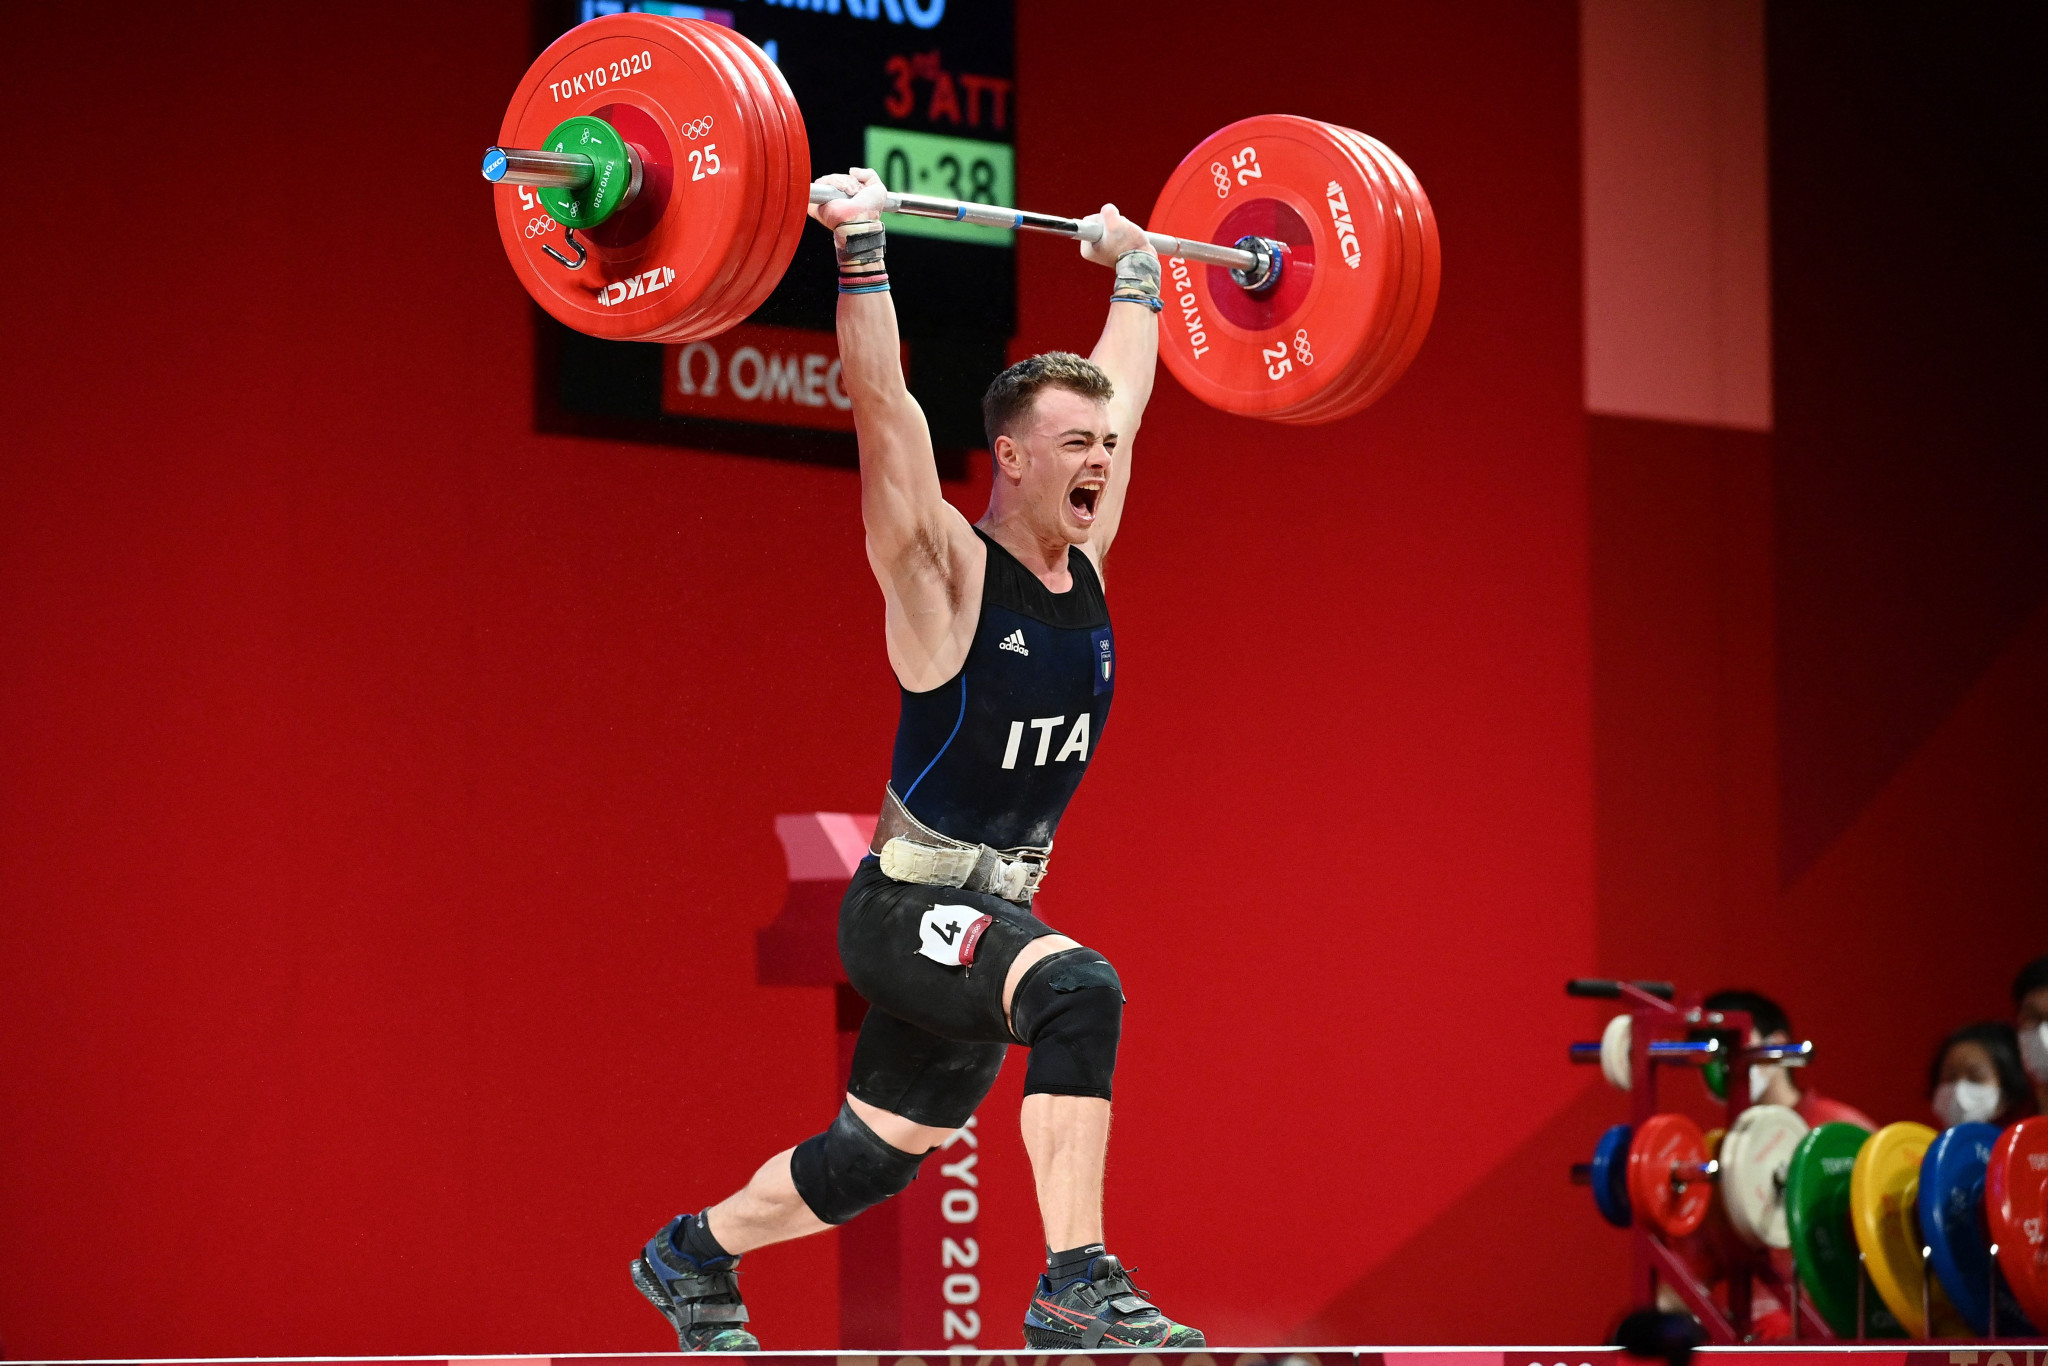 """Italy's Tokyo 2020 medals herald """"a new era for weightlifting"""""""